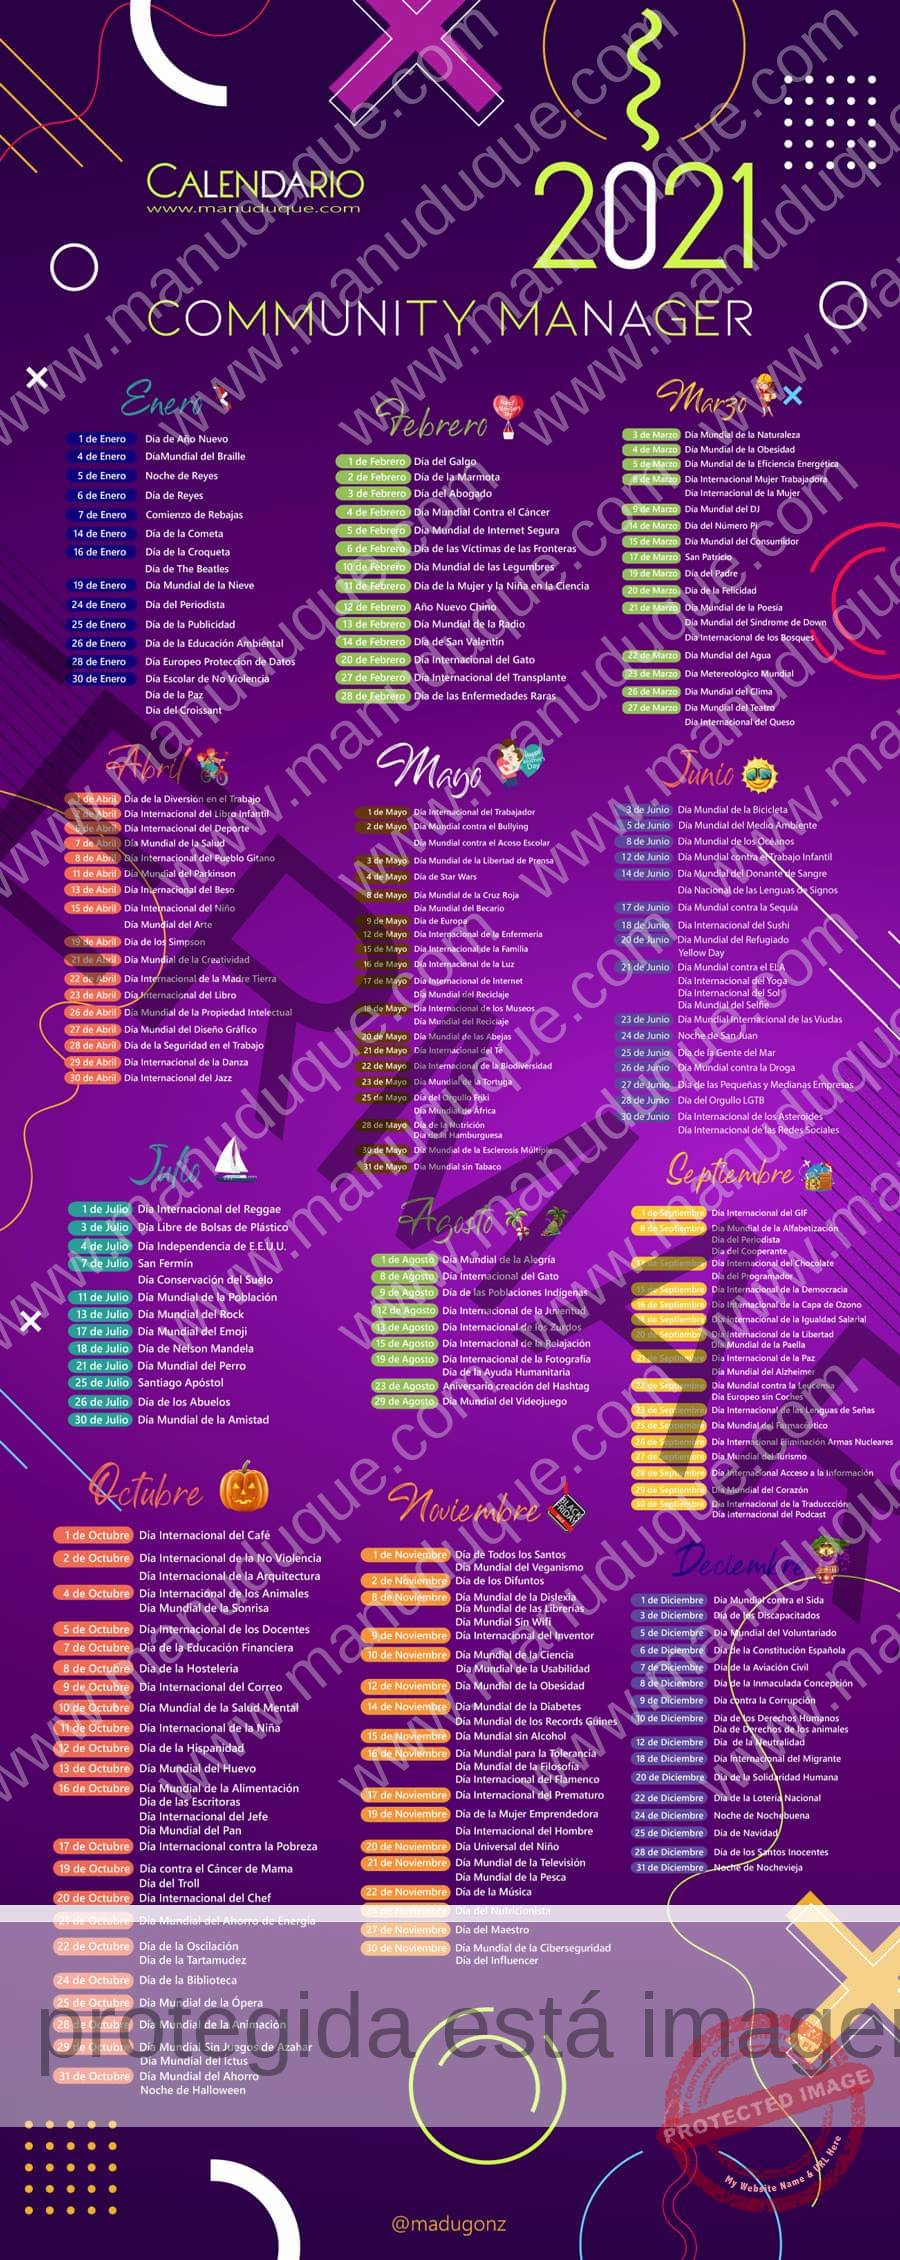 Calendario Del Community Manager Y Social Media 2021 Pdf Blog Community Manager Seo